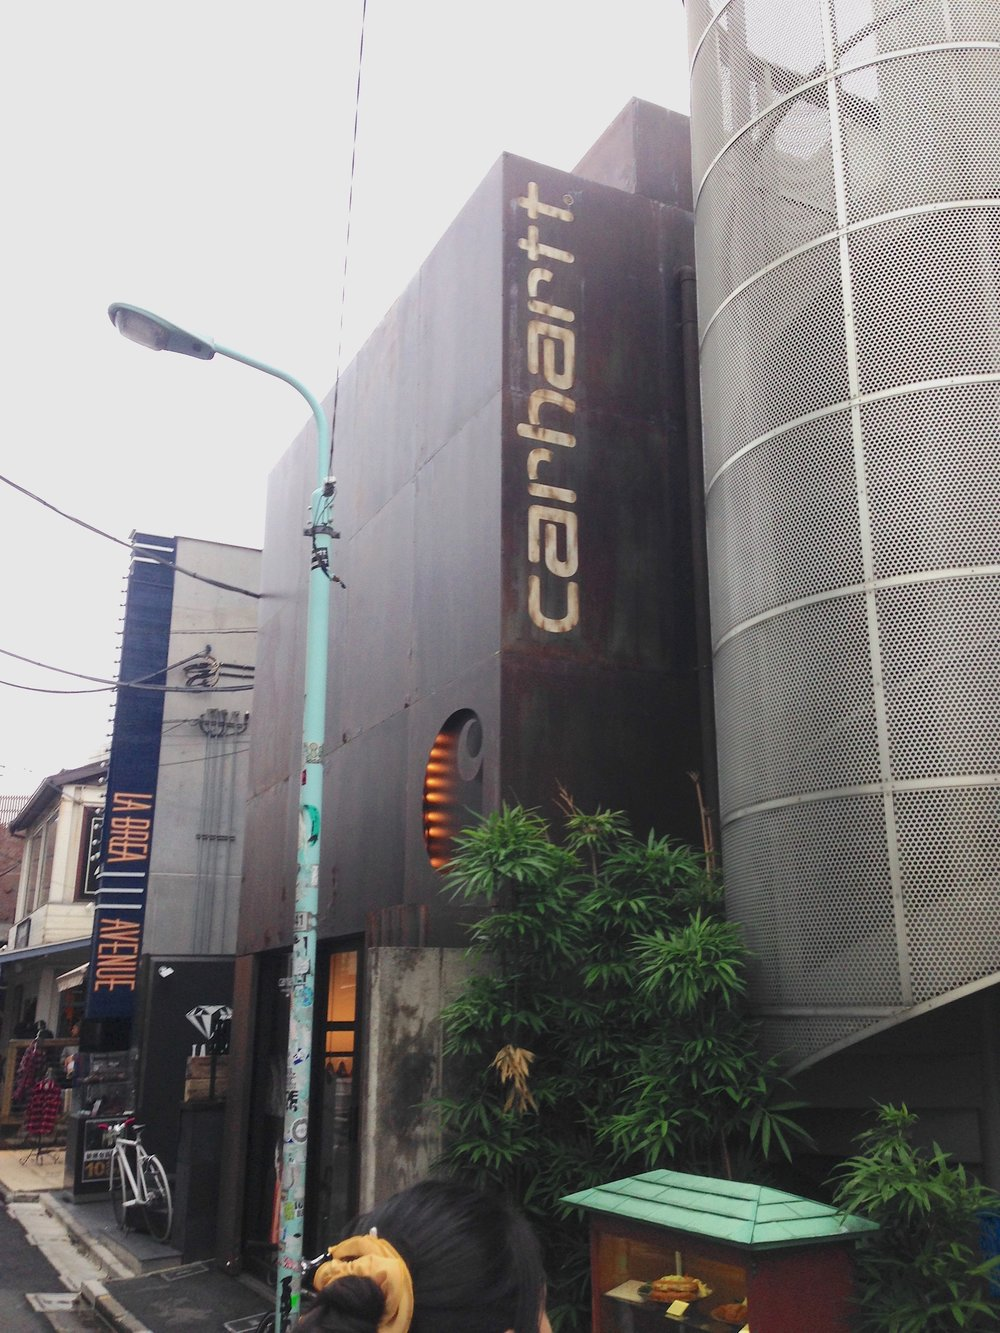 CARHARTT in the alley - Fashion & Lifestyle Spots in Tokyo, Japan - DROP